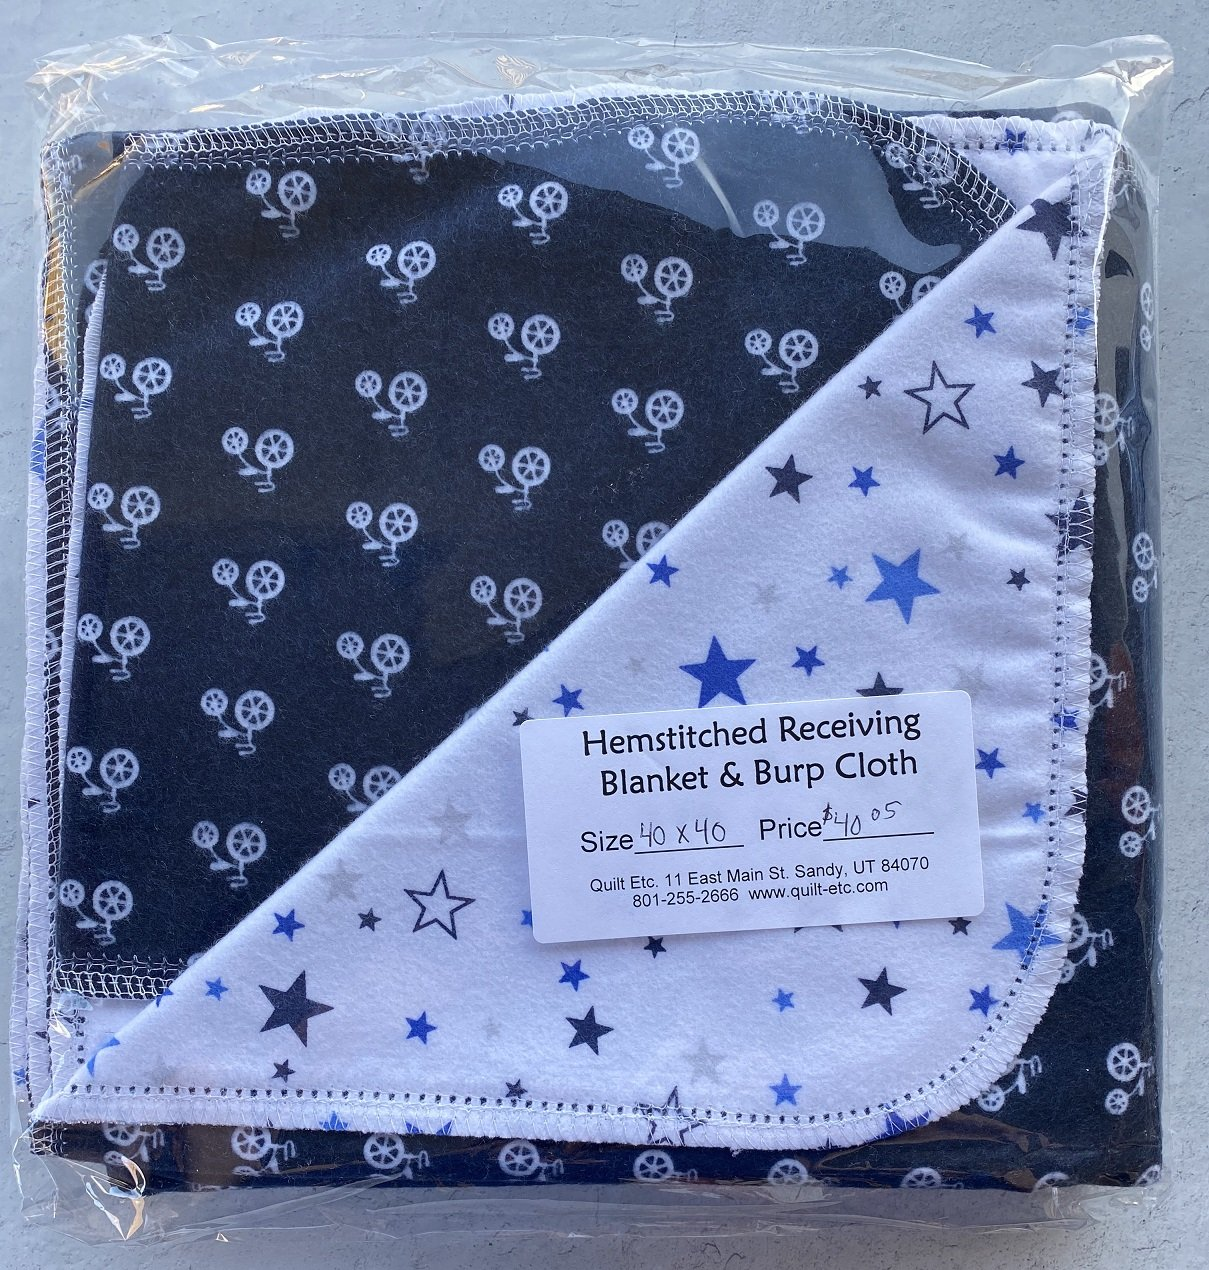 Hemstitched Receiving Blanket & Burp Cloth 4